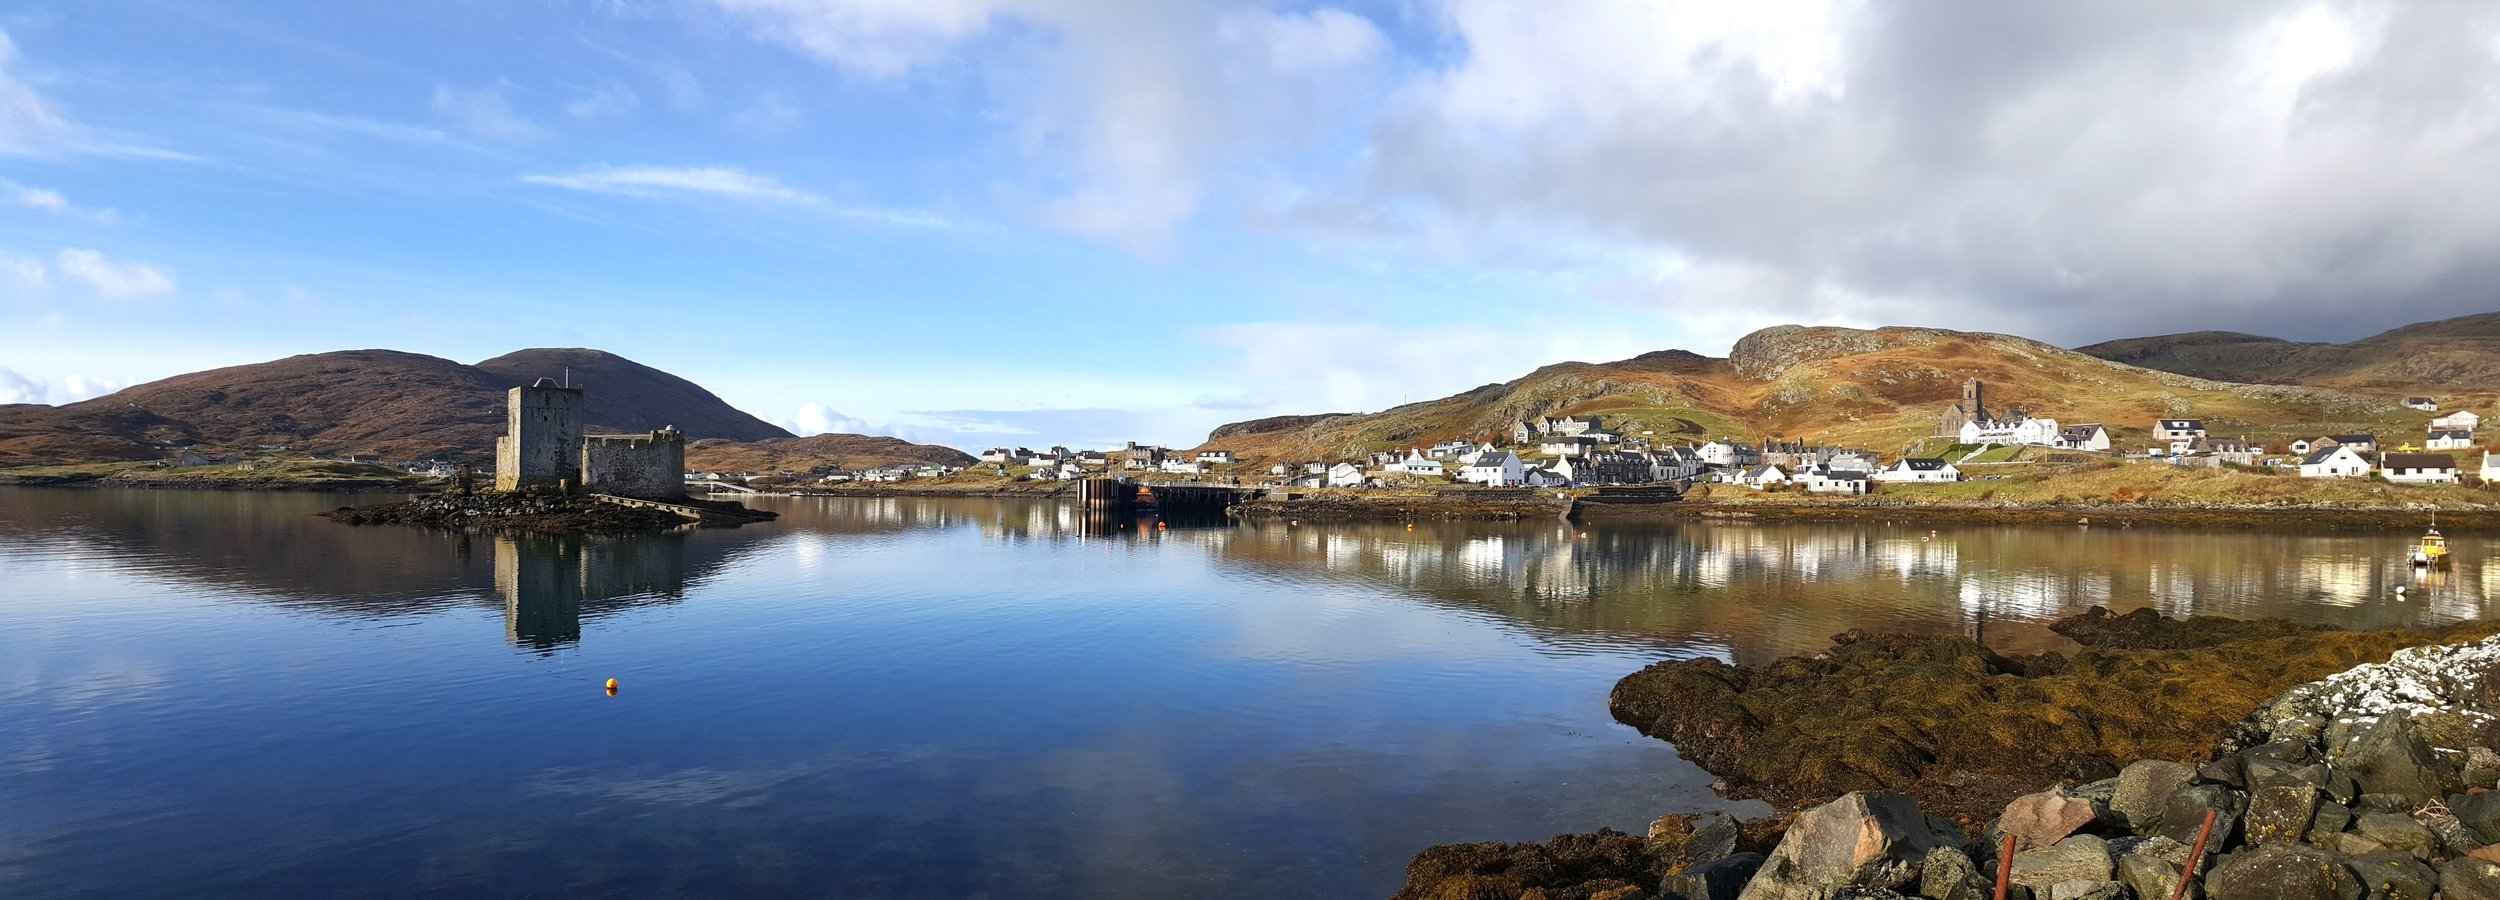 Panorama of Castlebay with Kismul Castle